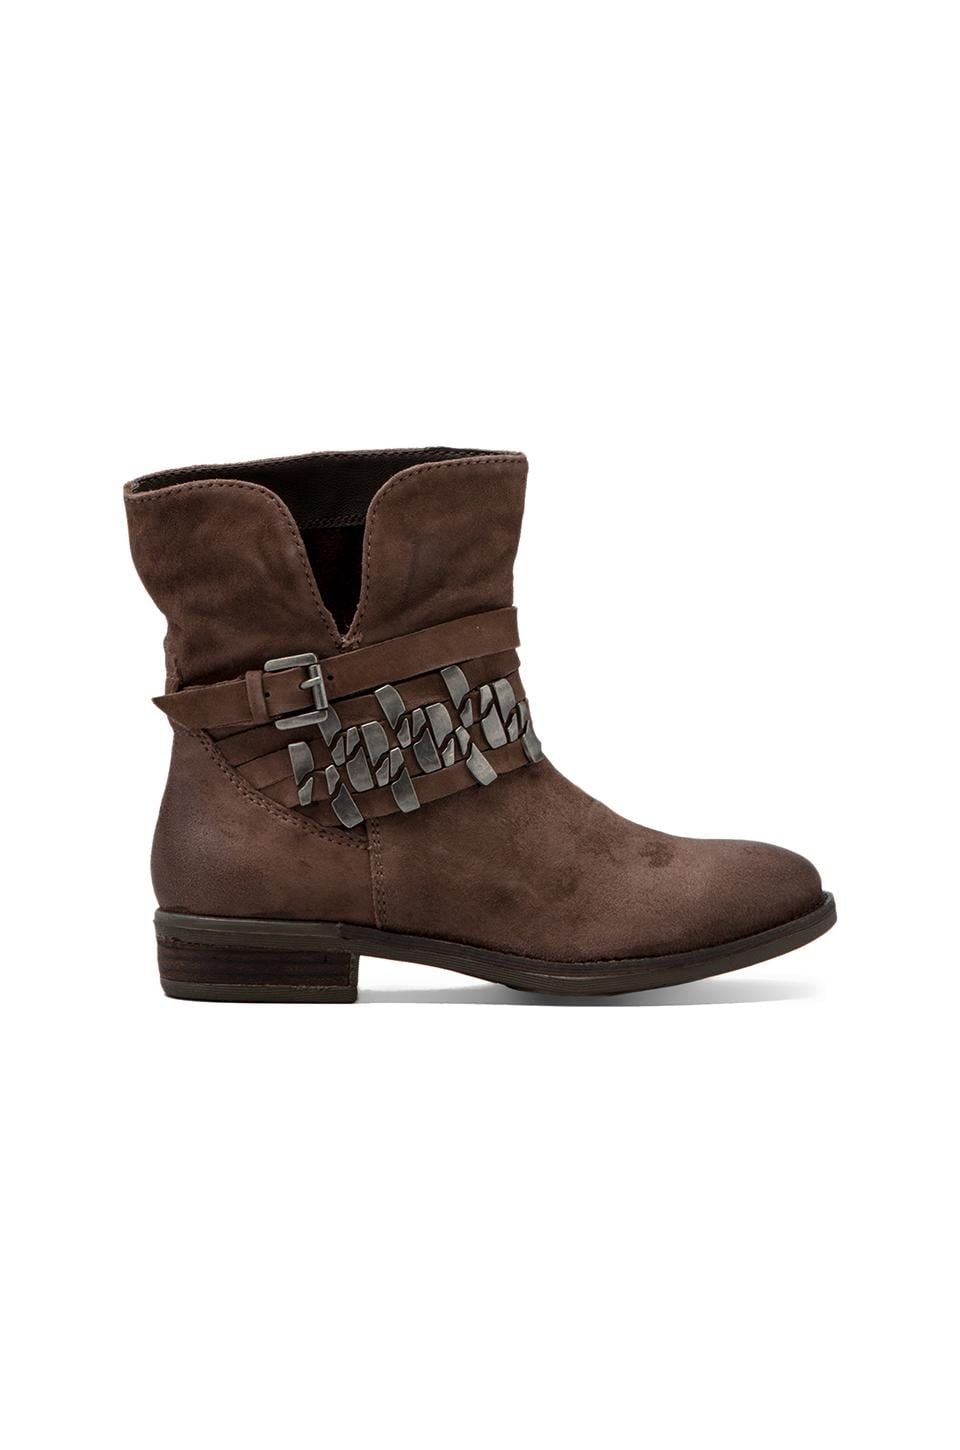 Steven Tracker Boot in Taupe Distressed Leather